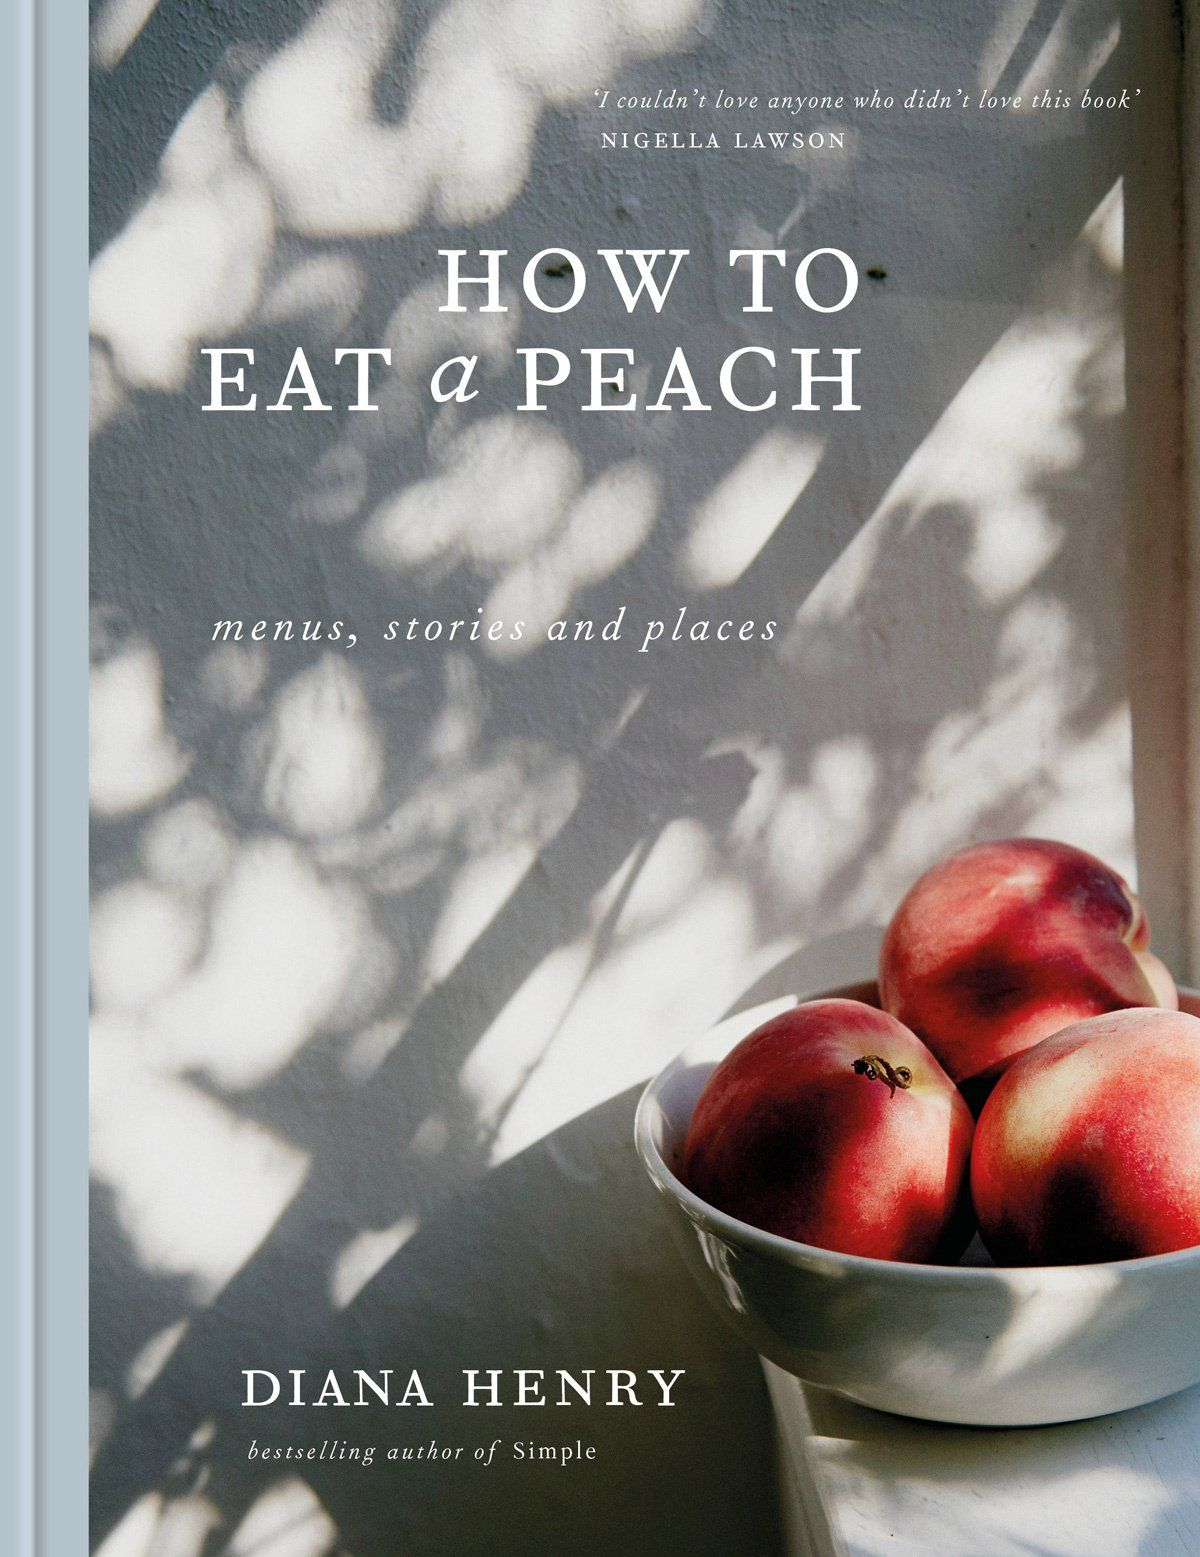 How To Each A Peach by Diana Henry: Yes, I know there is a quote from me on the cover - the peachily fuzzy-feel cover - of Diana Henry's wonderful new book letting you know how enthusiastic I am about it, but I really felt I had to draw it to your attention here, too. For the book really is doubly a joy: a writer's enquiry into place, memory and identity, and a cook's offering of food - presented in a series of menus - that uplifts, comforts, delights and inspires.